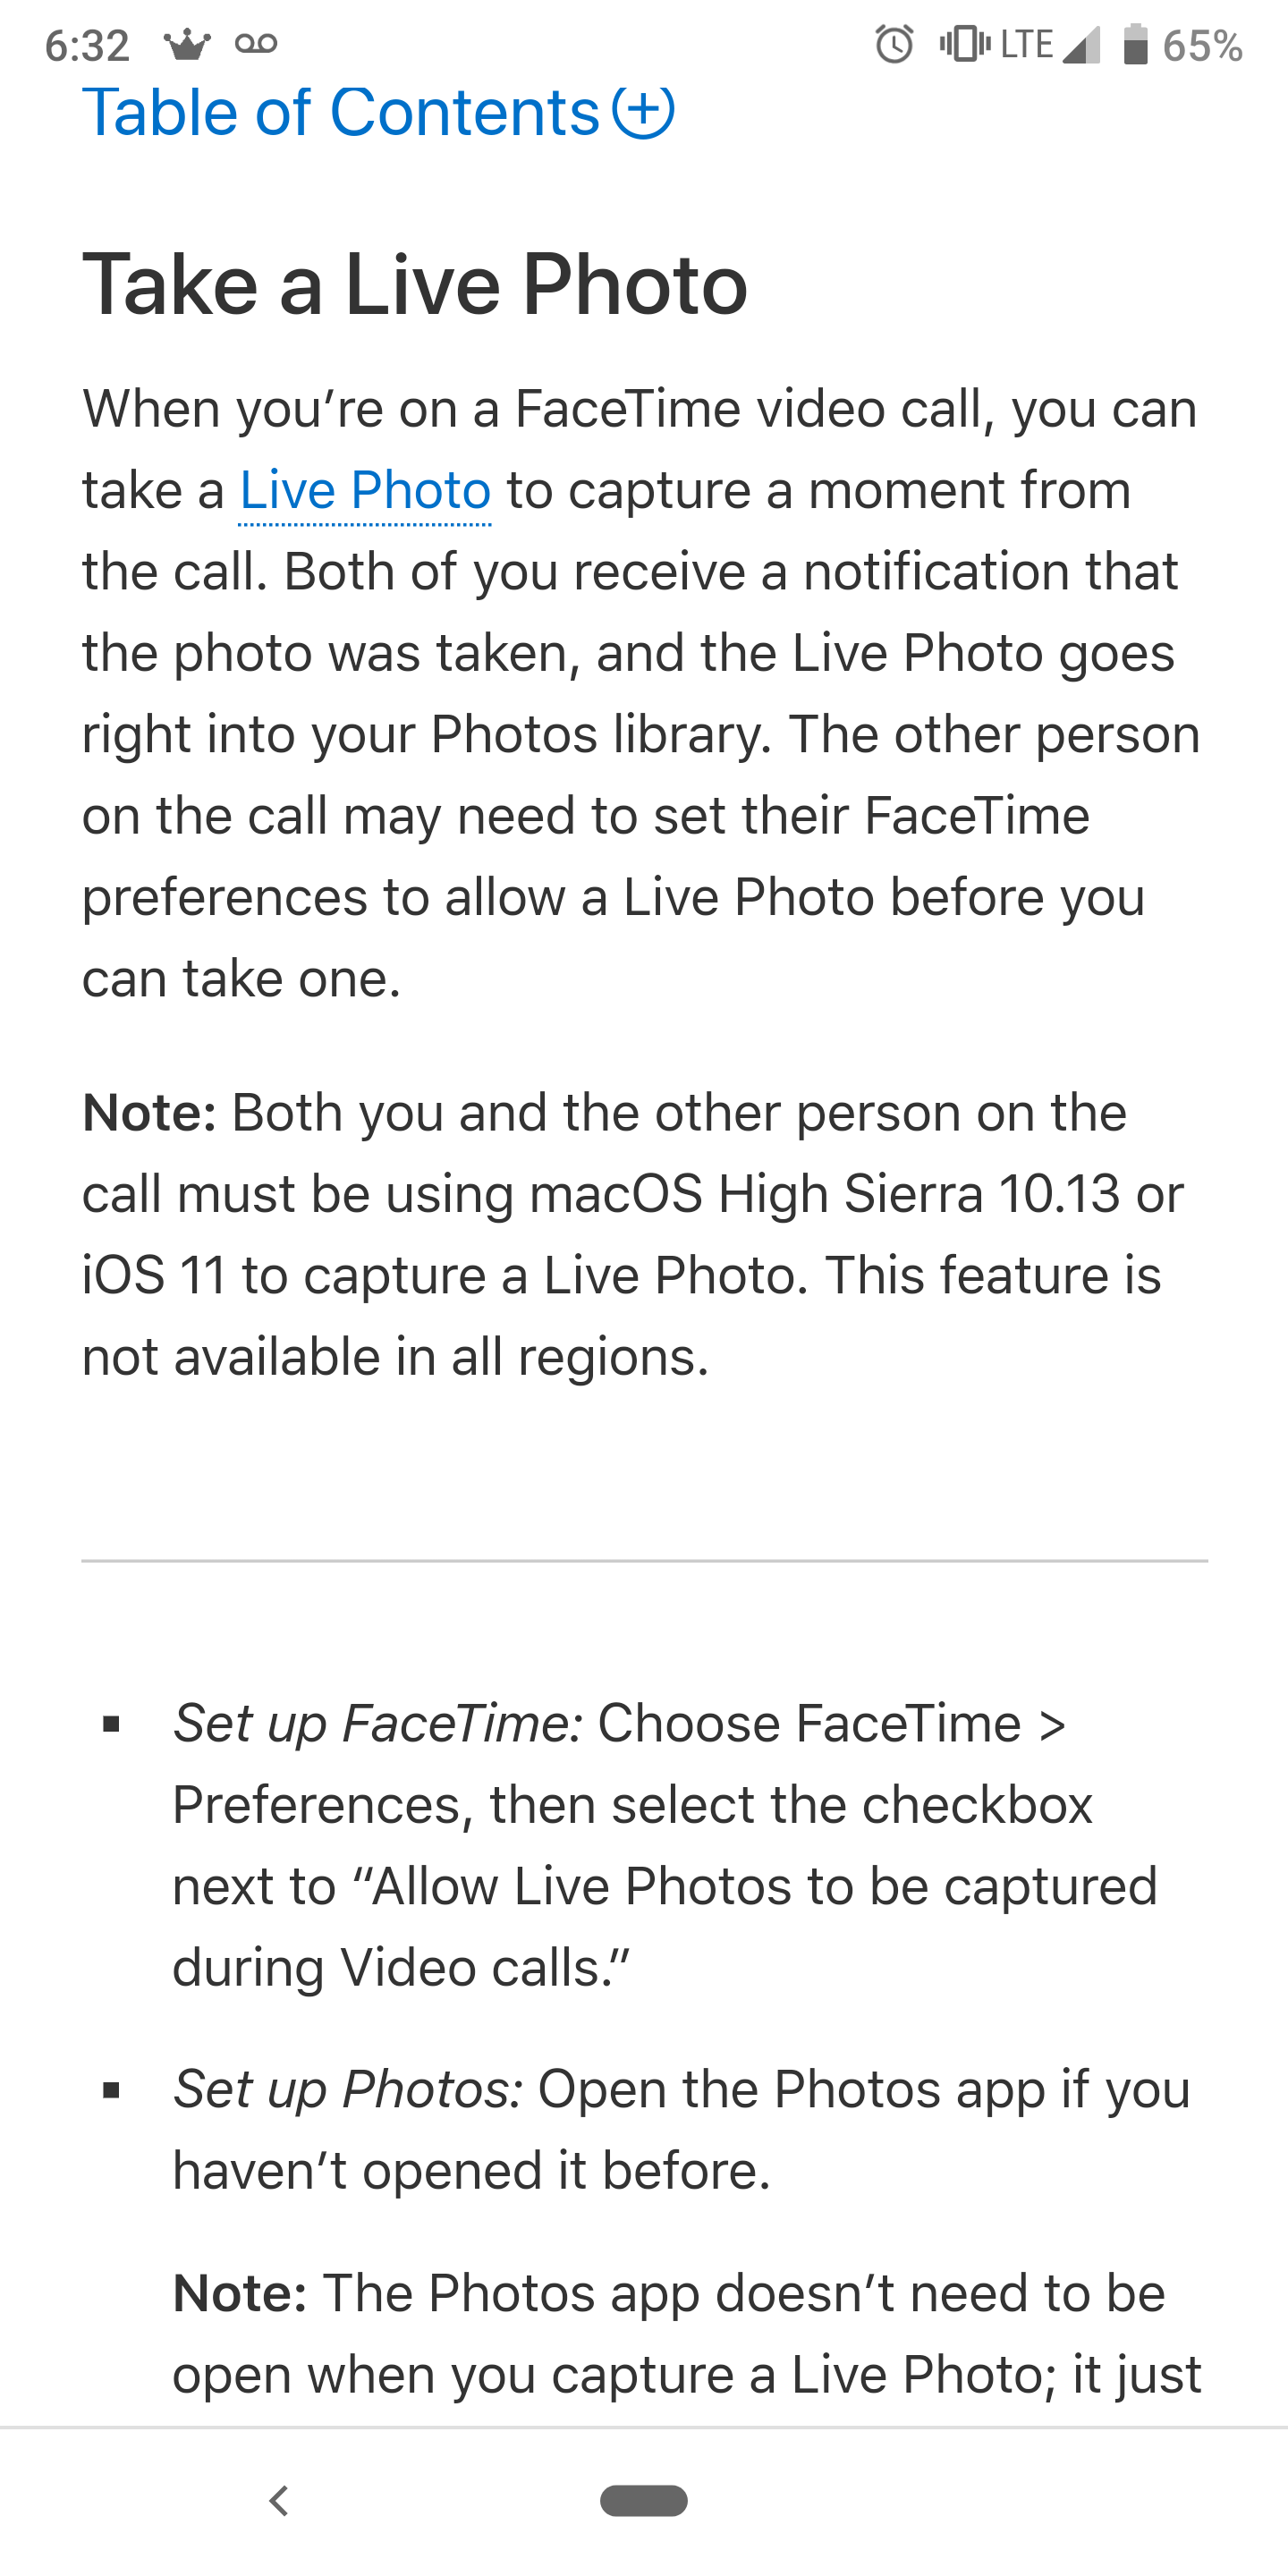 how to turn on facetime live photos on iphone xs max